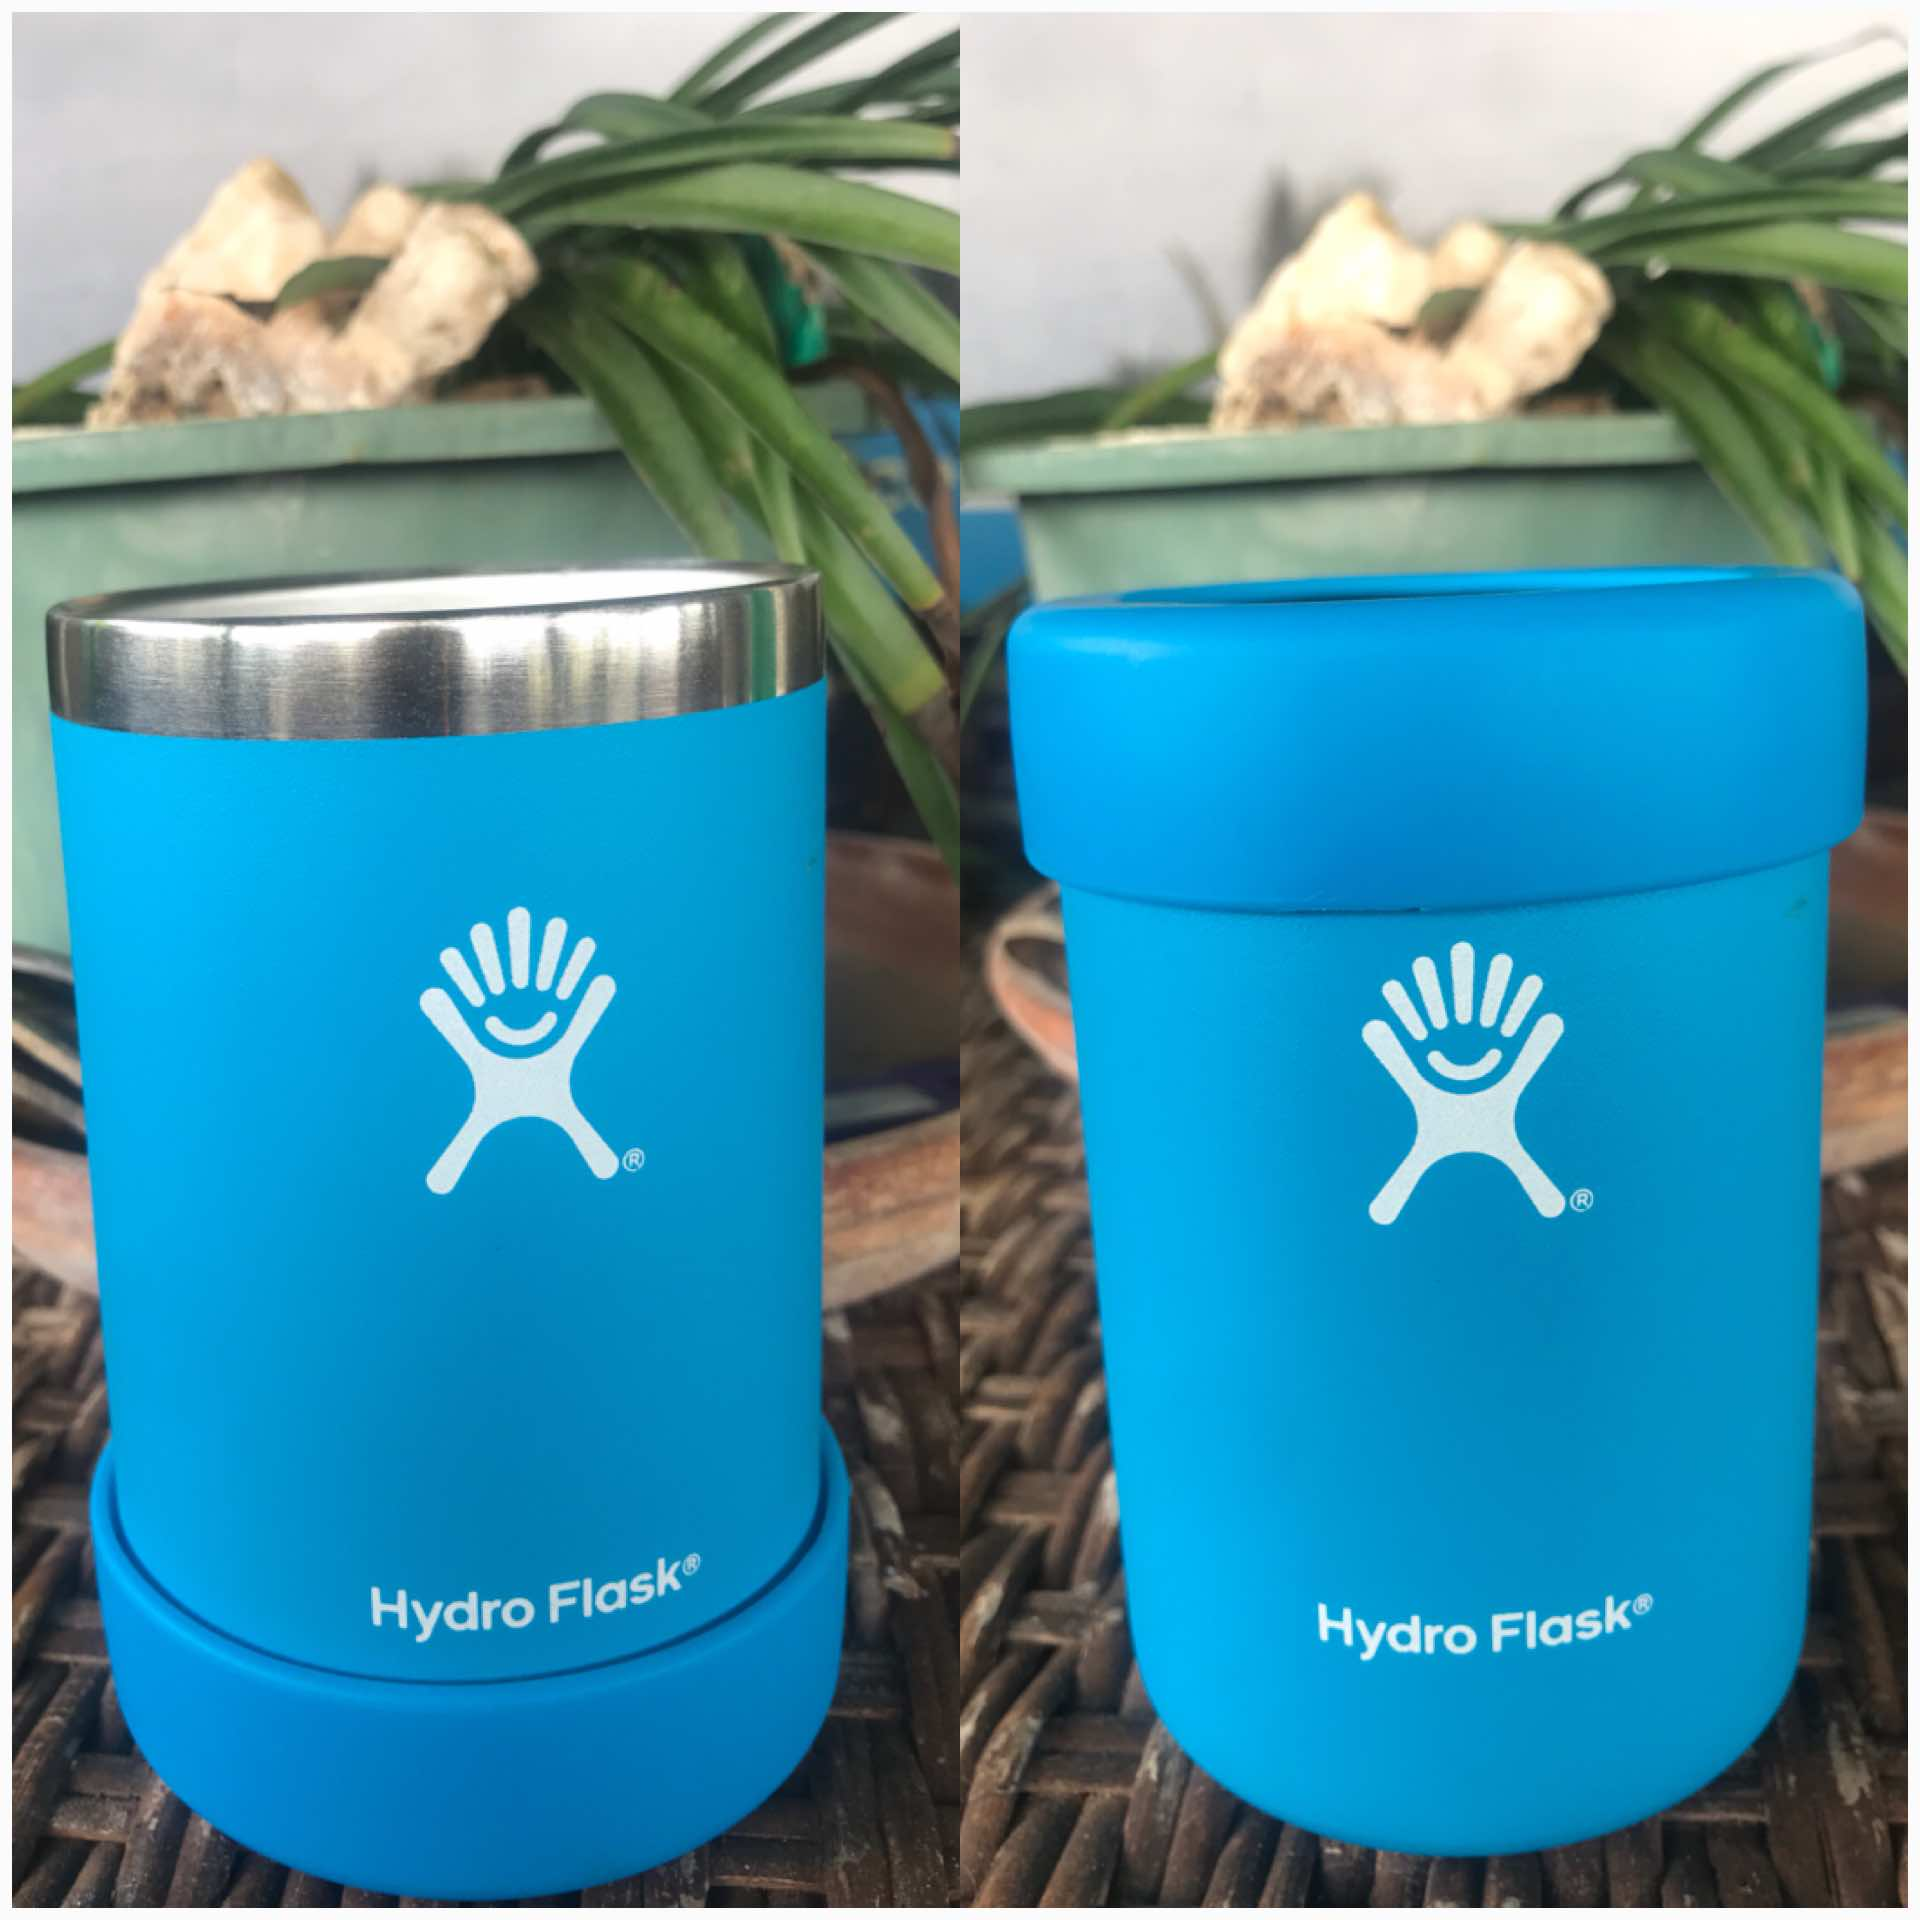 12 oz Hydro Flask Cooler Cup